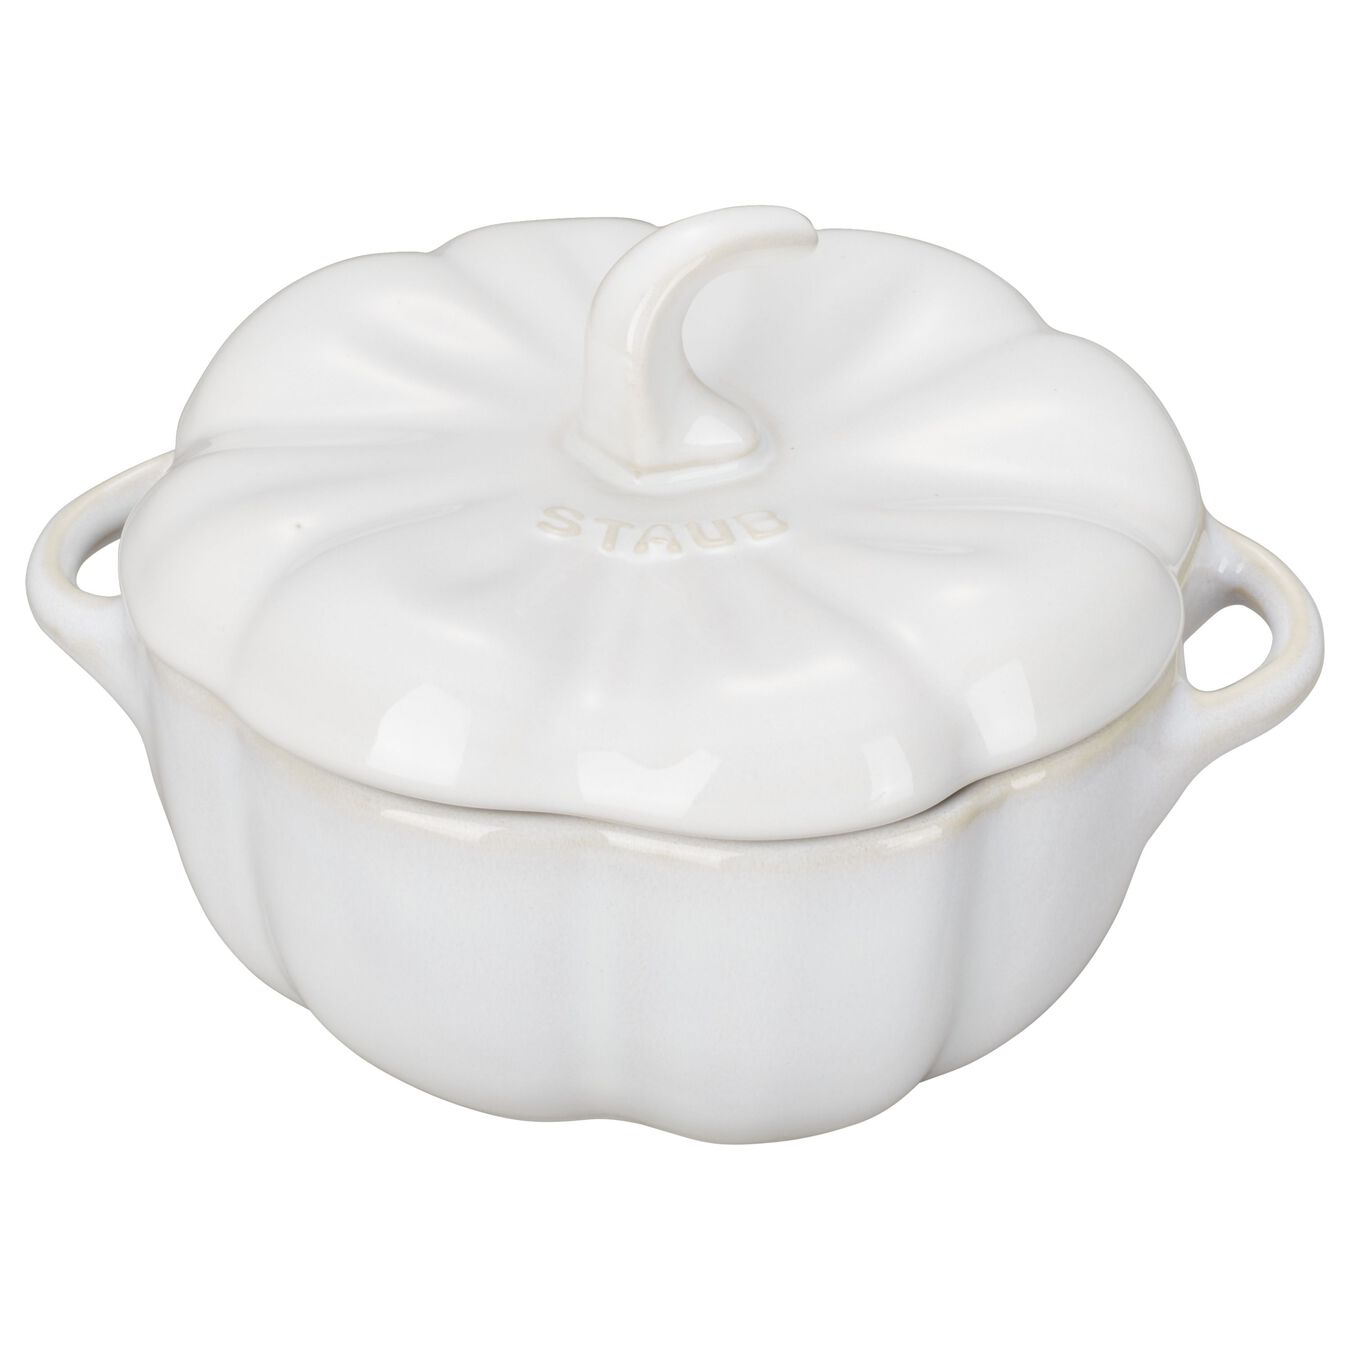 470 ml pumpkin Cocotte, ivory-white,,large 1